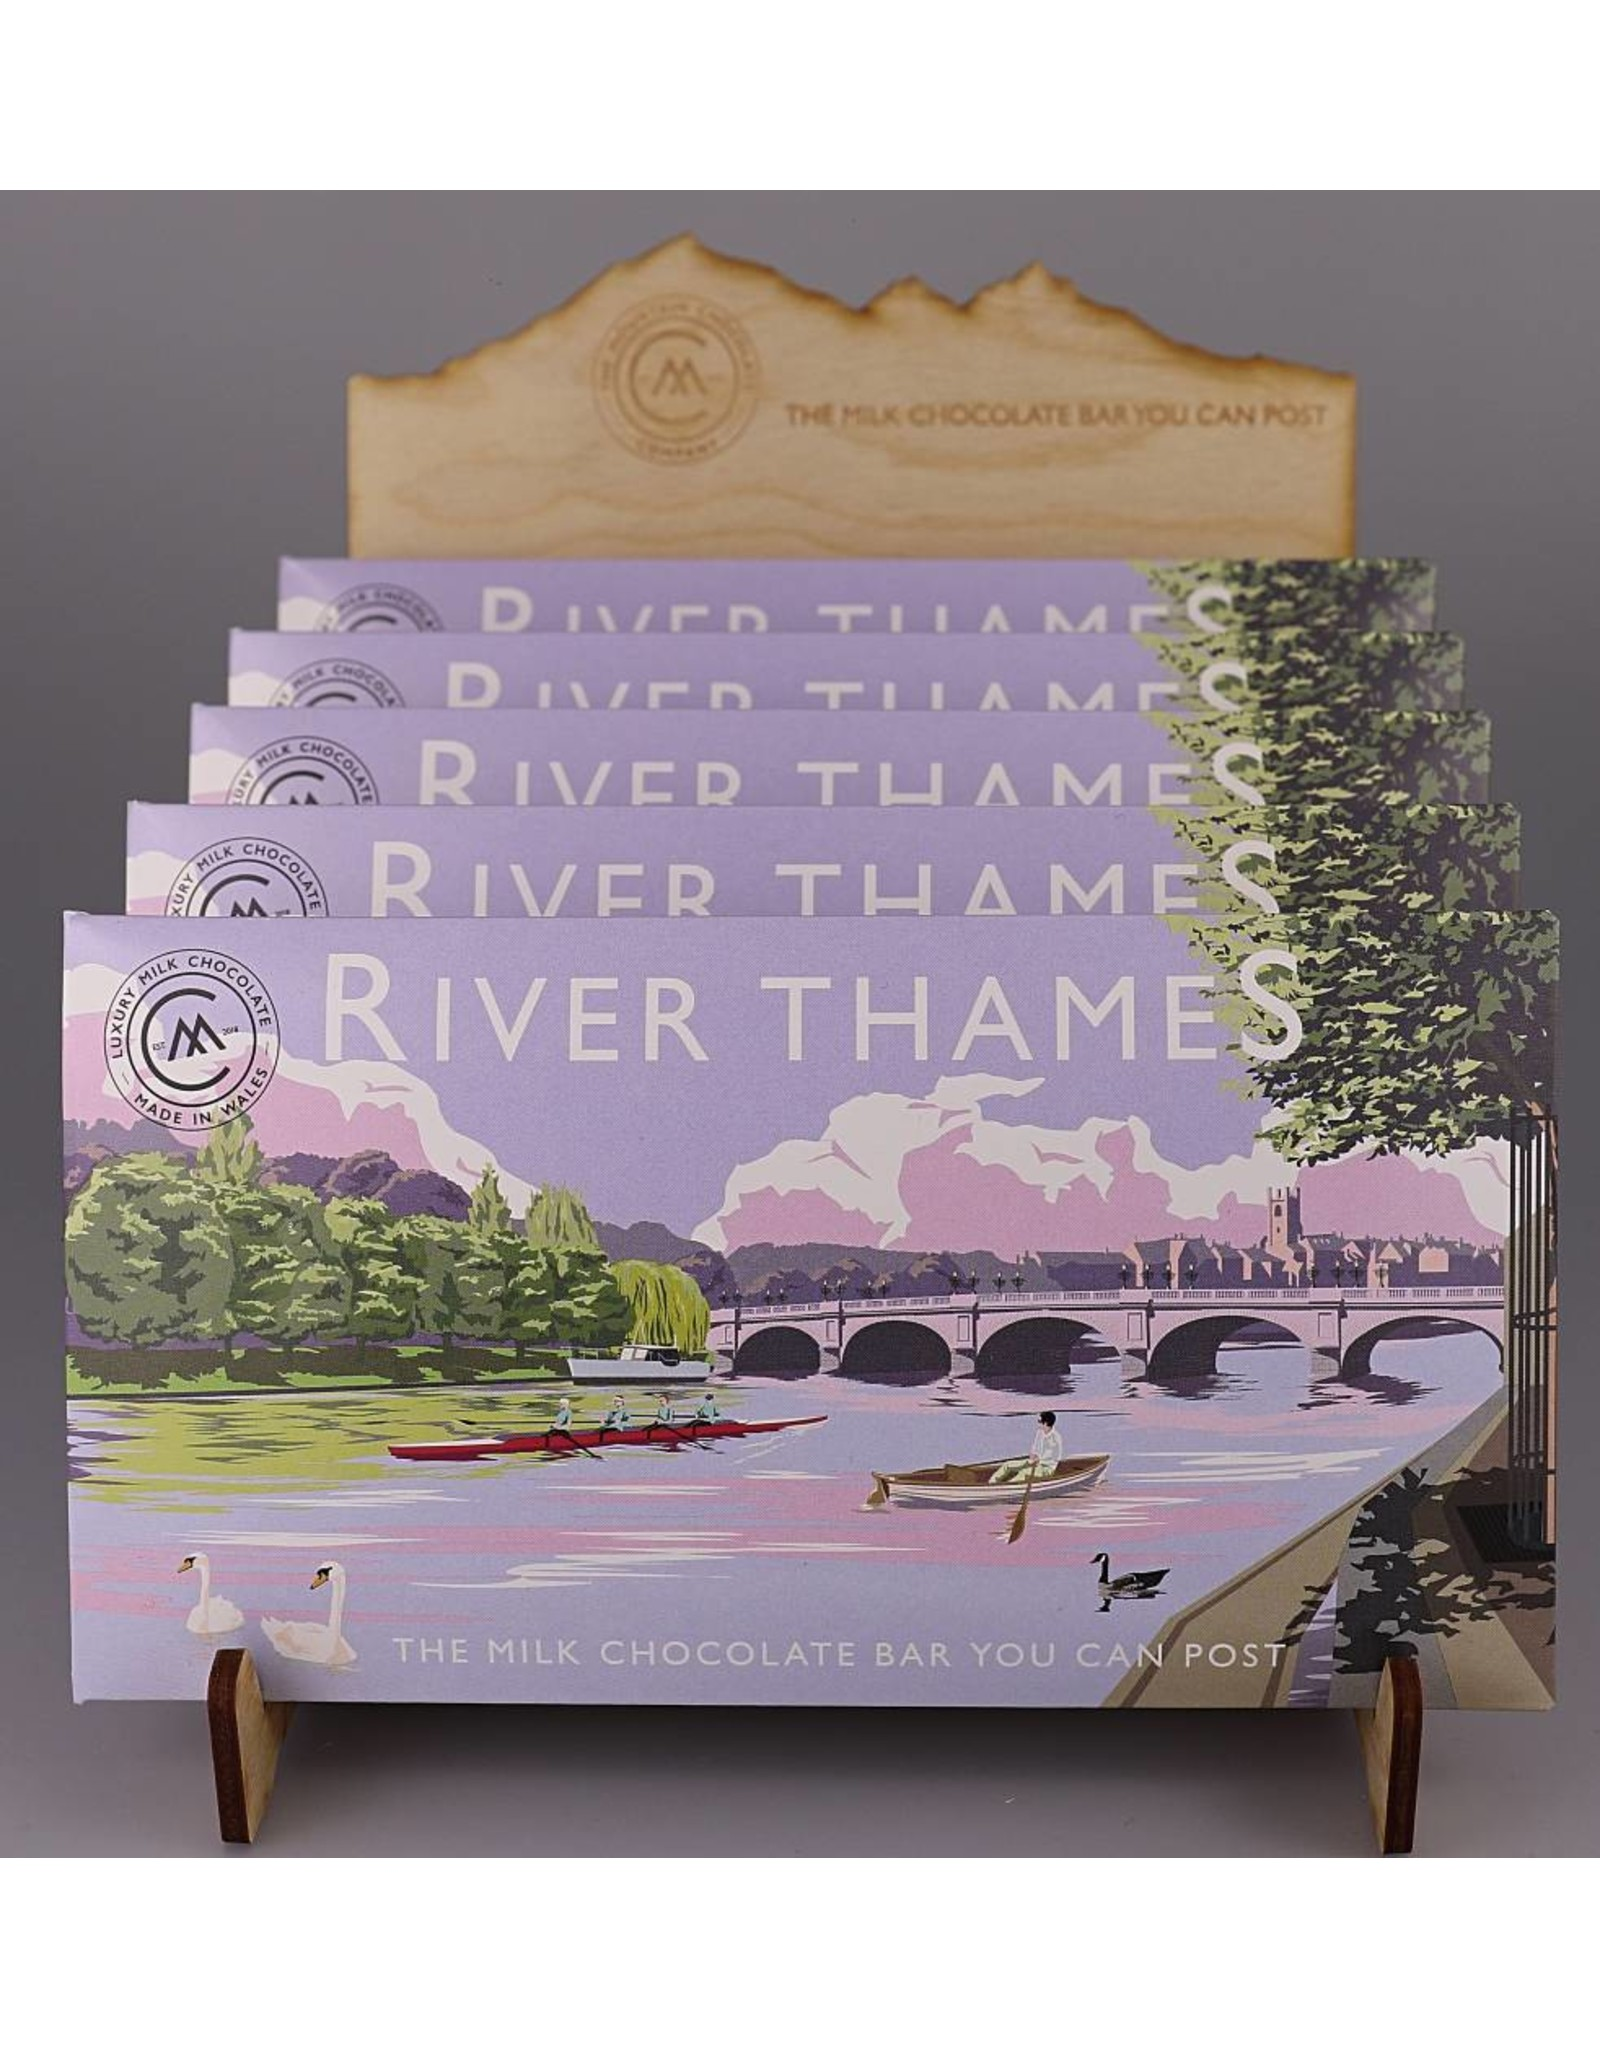 The Chocolate Bar You Can Post -River Thames